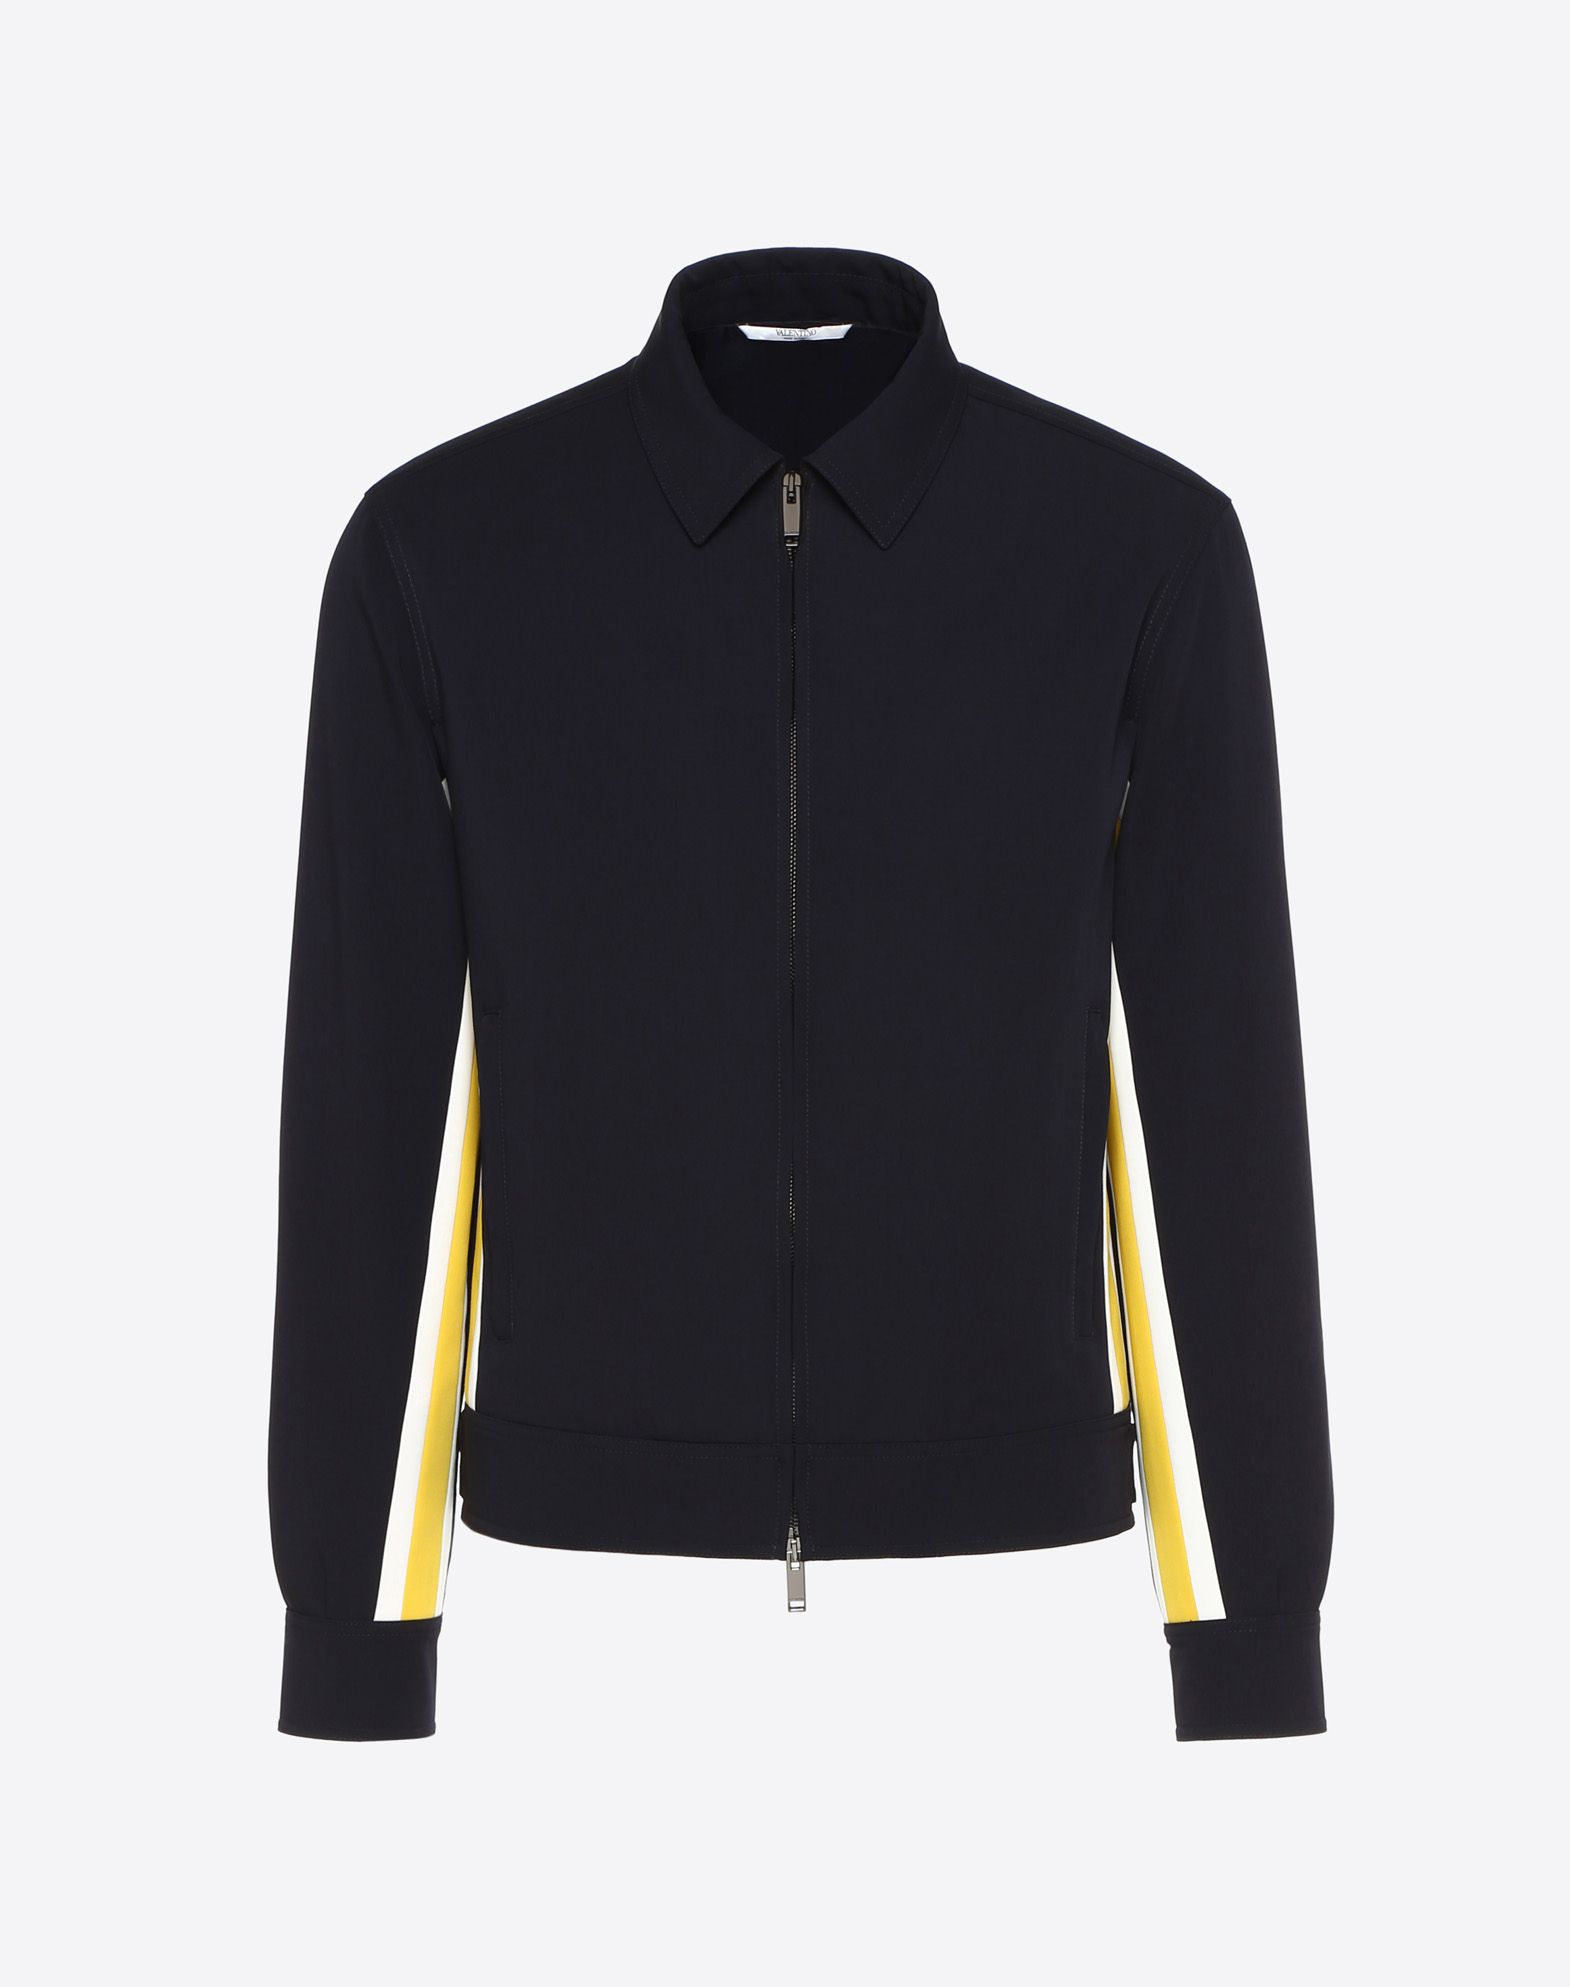 BLOUSON WITH CONTRASTING SIDE STRIPES